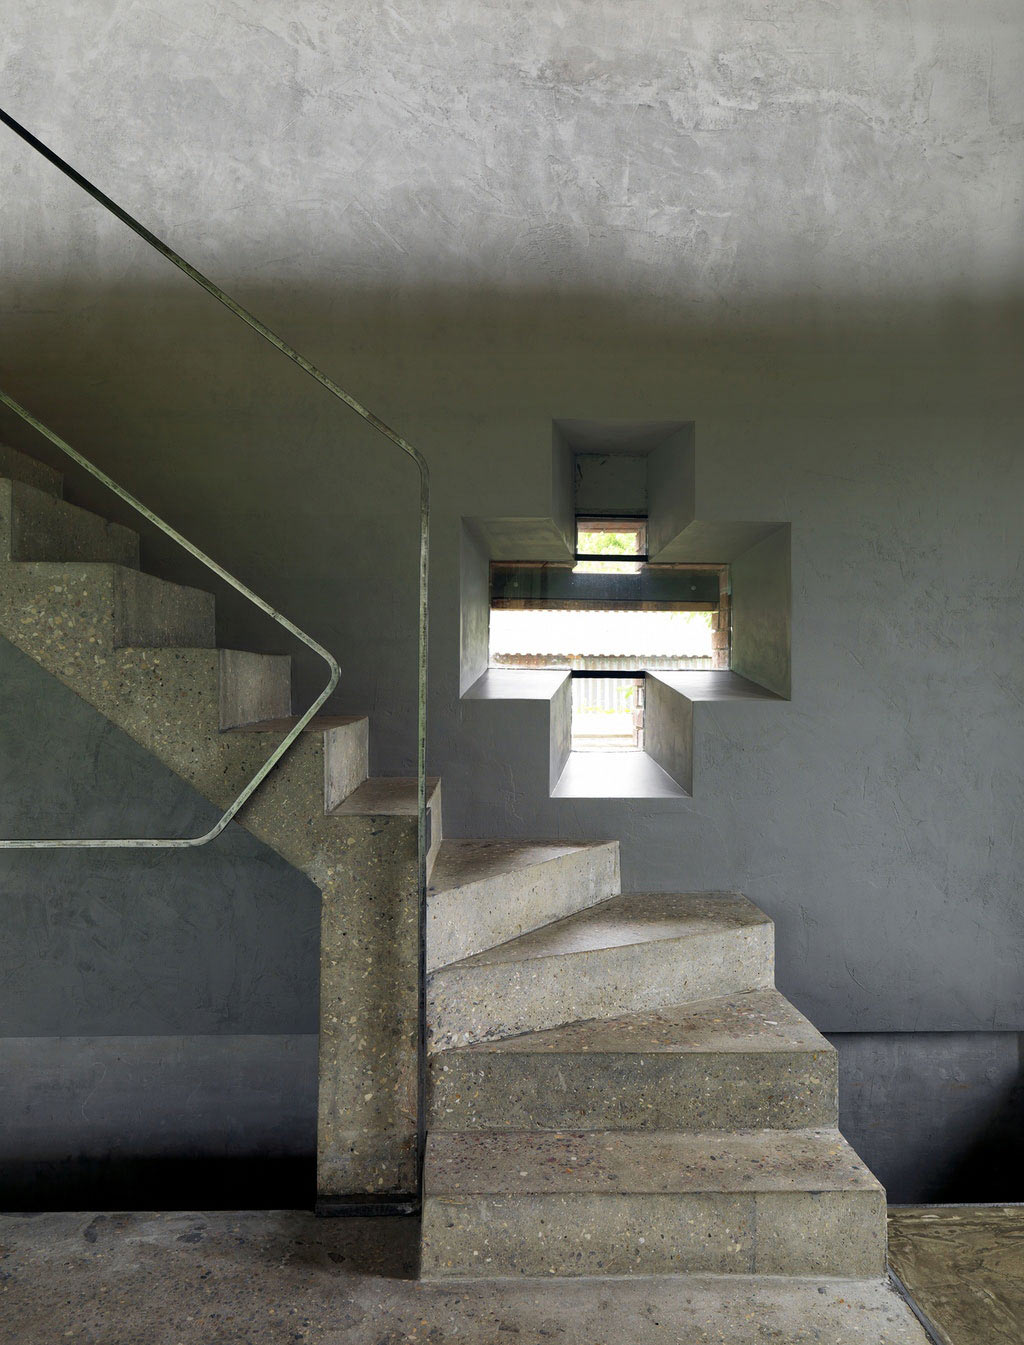 Concrete Stairs, House of Poshvykinyh Architects Near Moscow